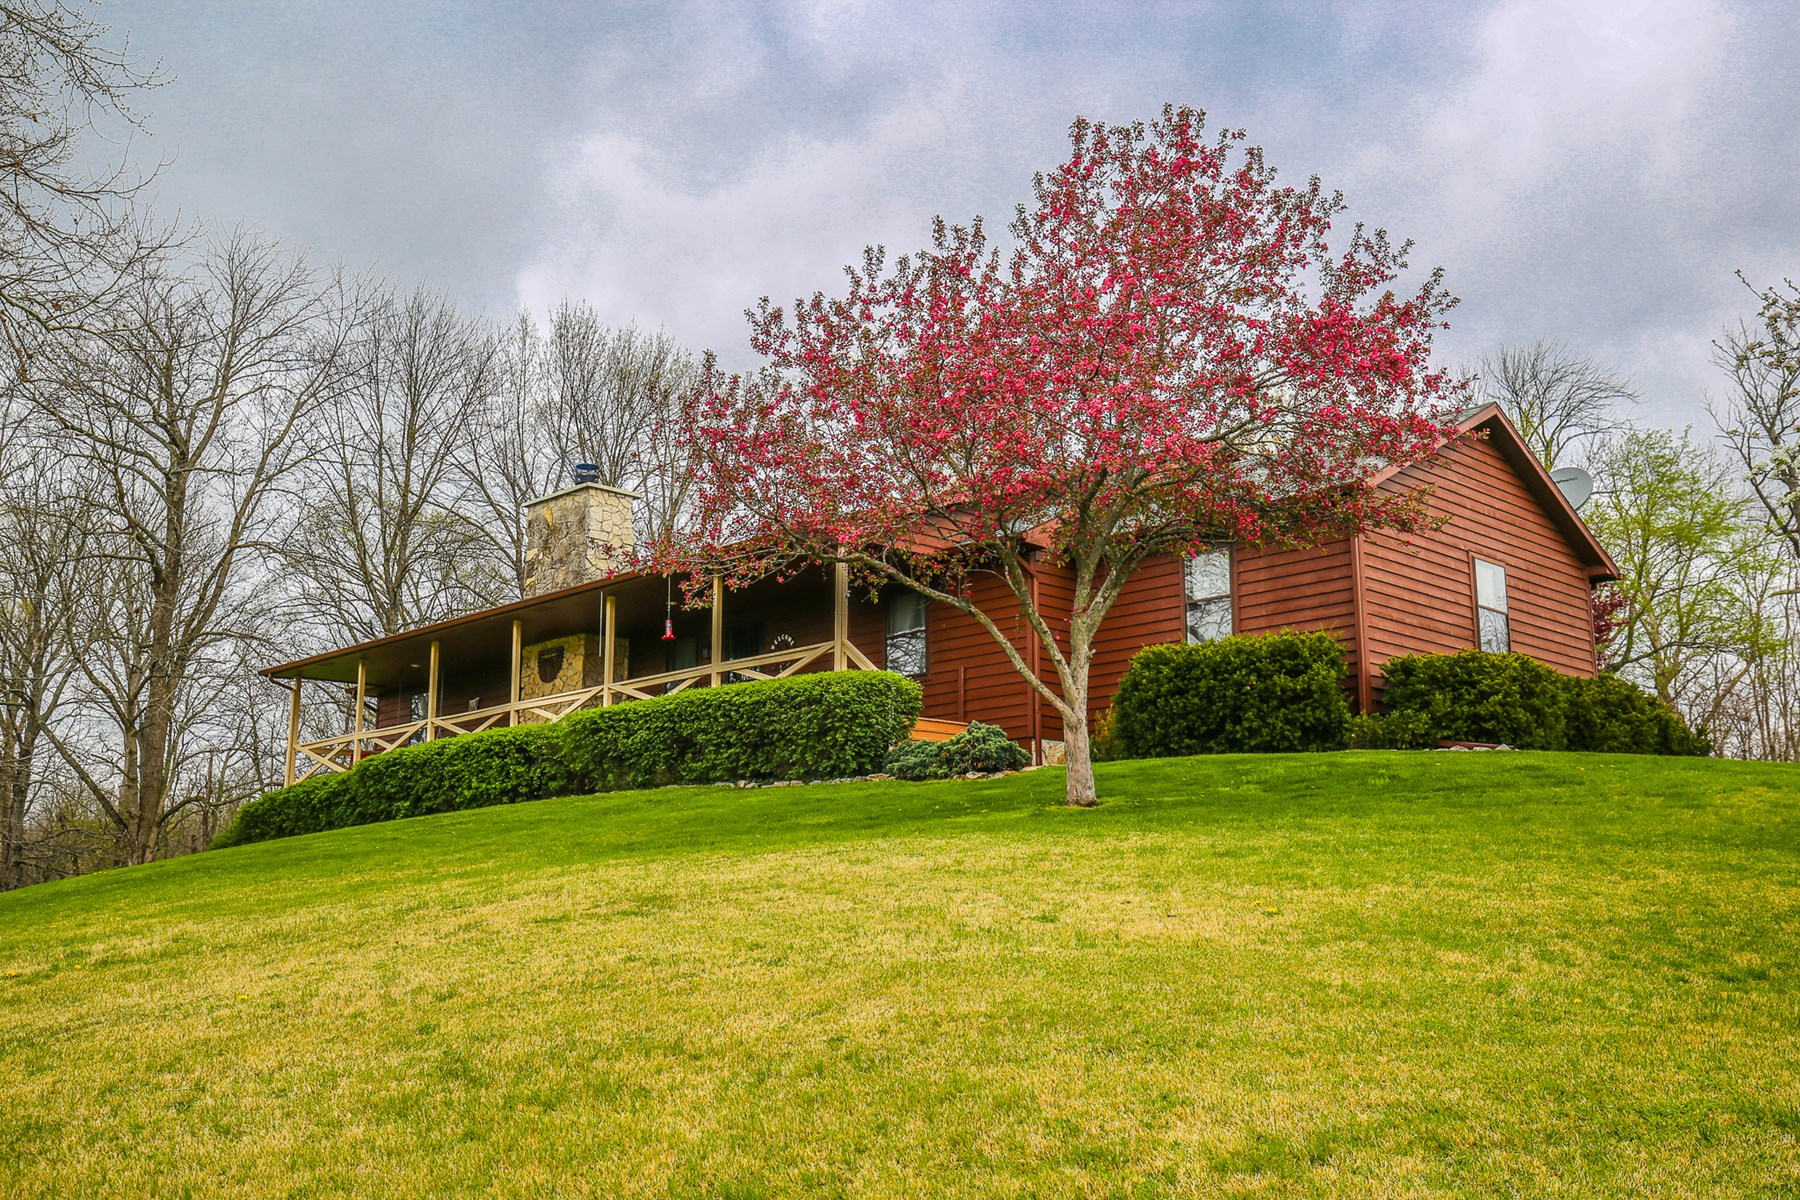 Indiana Country Home for Sale | Hobby Farm Flat Rock, IN